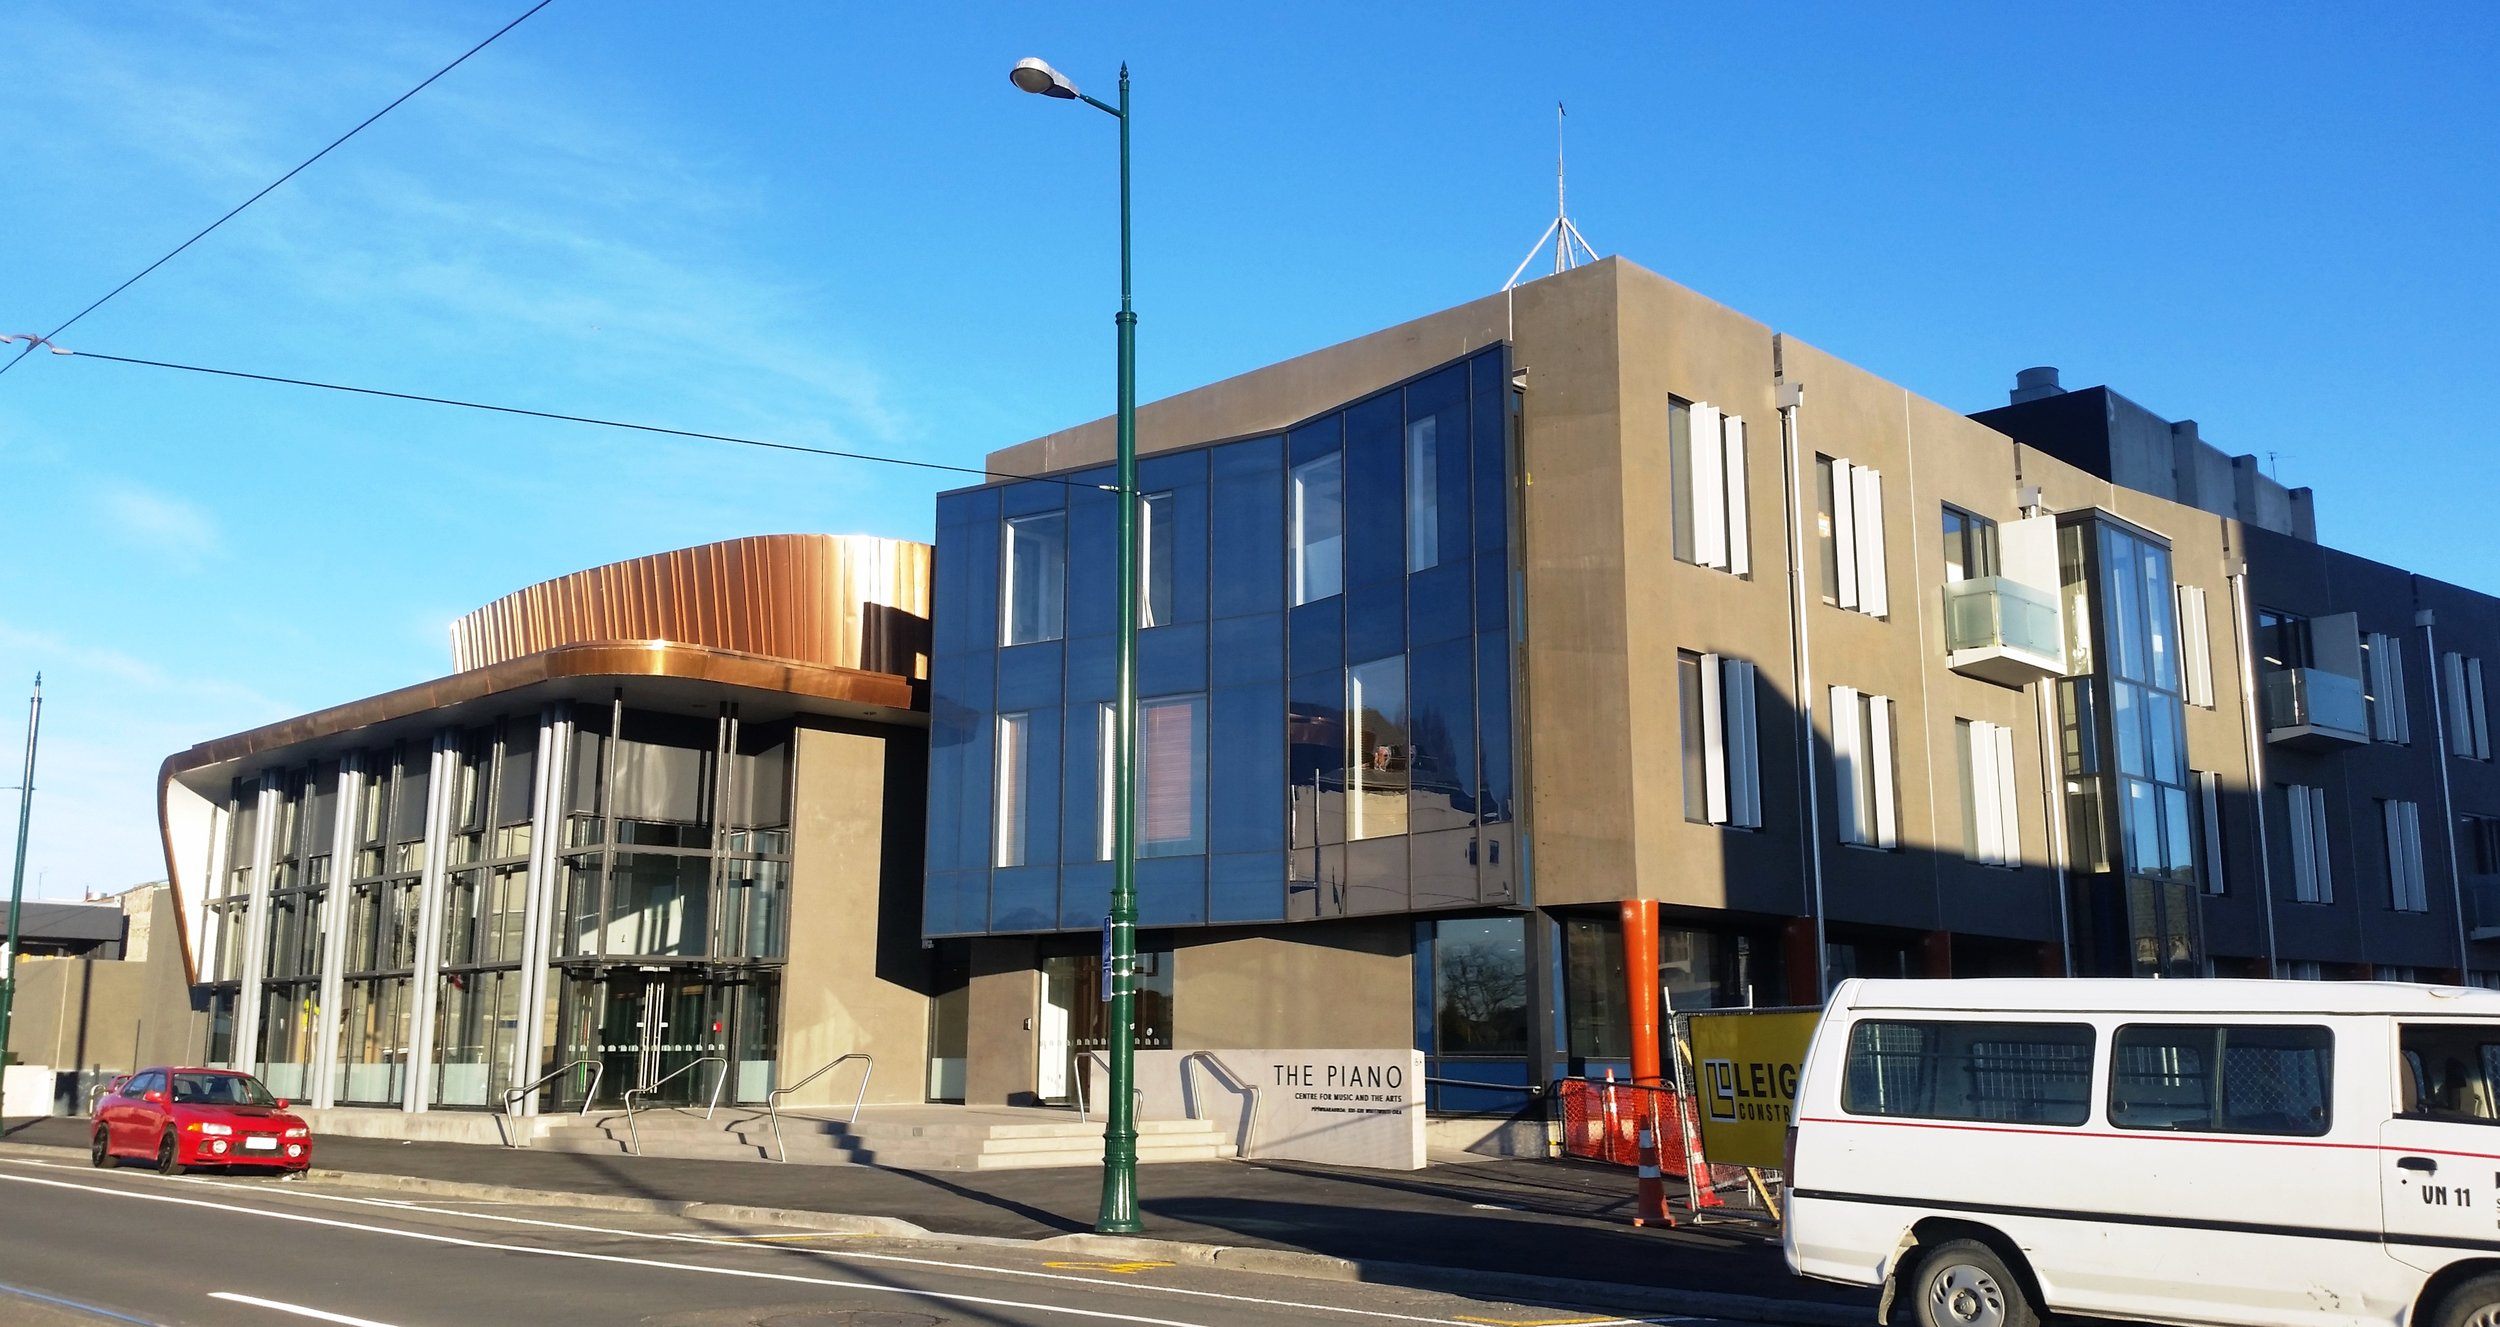 The Piano: Centre for Music and the Arts, Performing Arts Precinct, Christchurch CBD